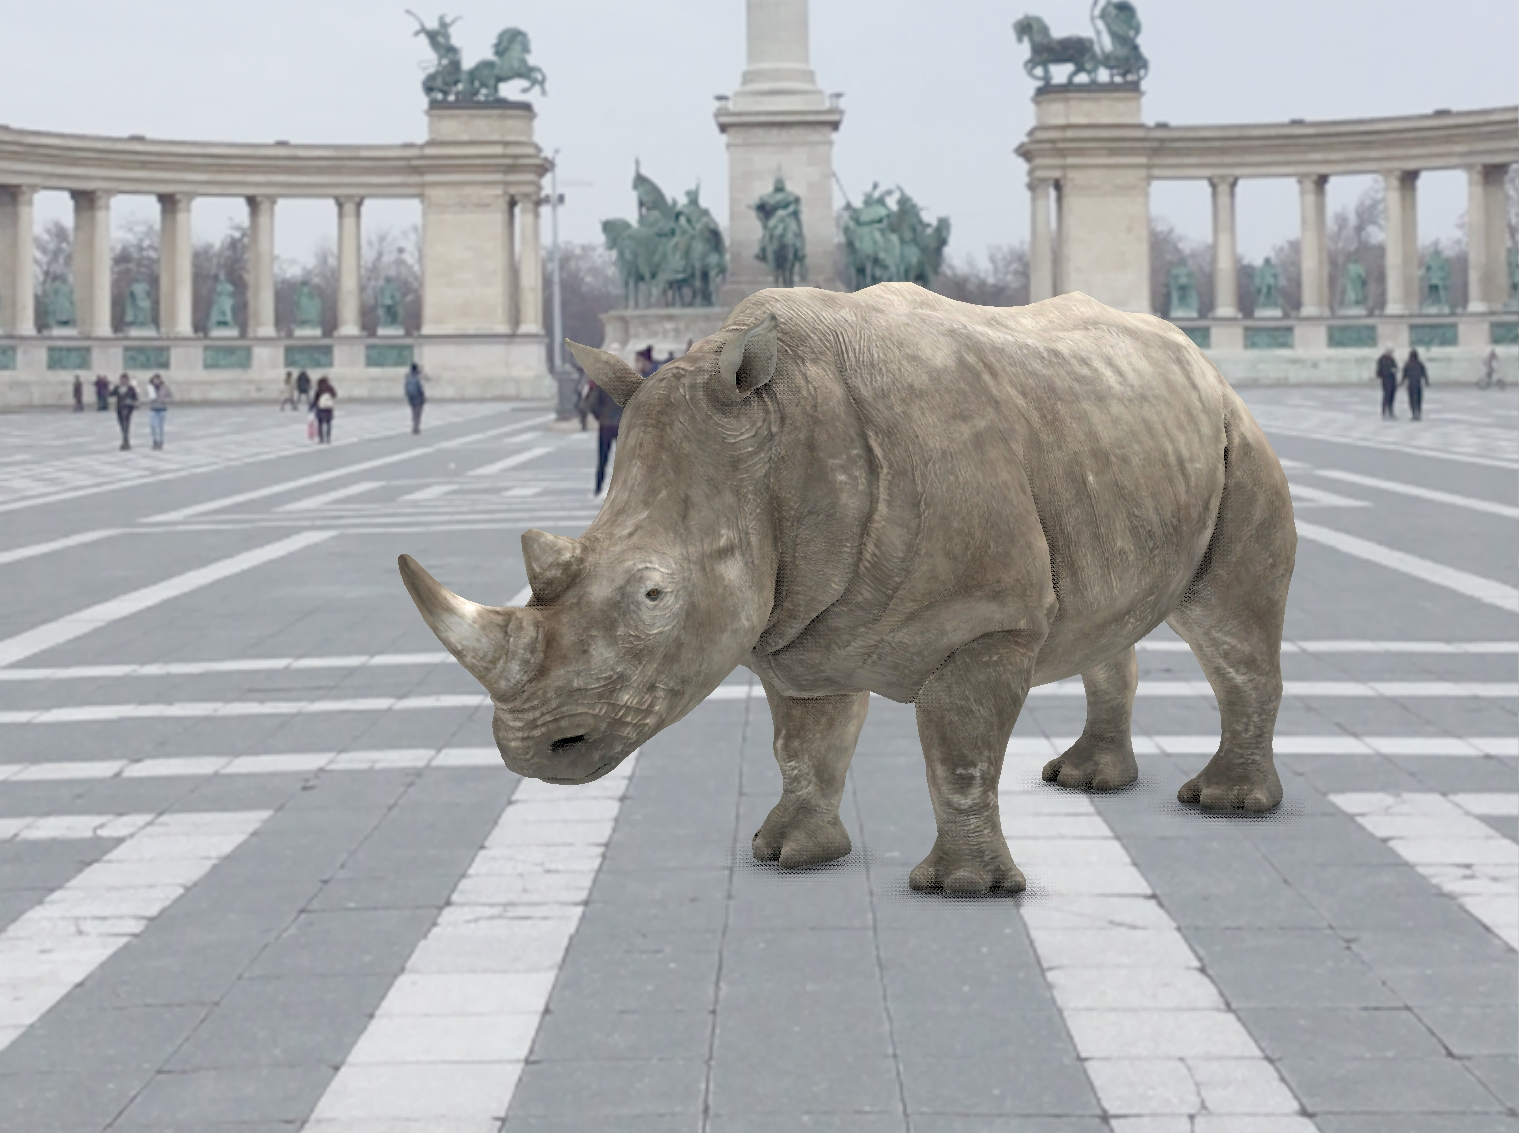 Testing the AR app – One of the last three Northern White Rhinos in the heart of Budapest